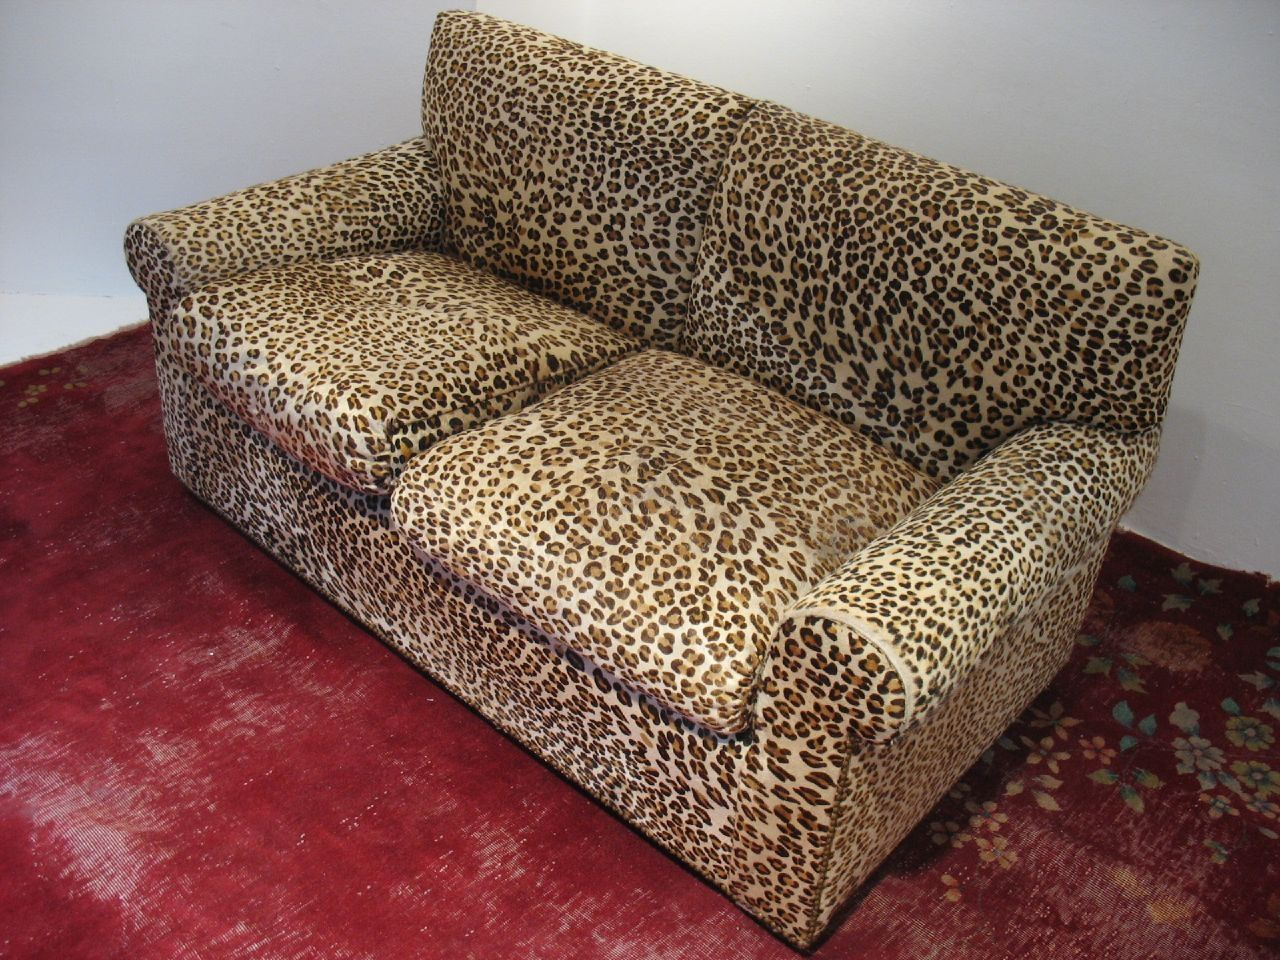 print sofa set barcalounger leather zebra covers leopard couch and